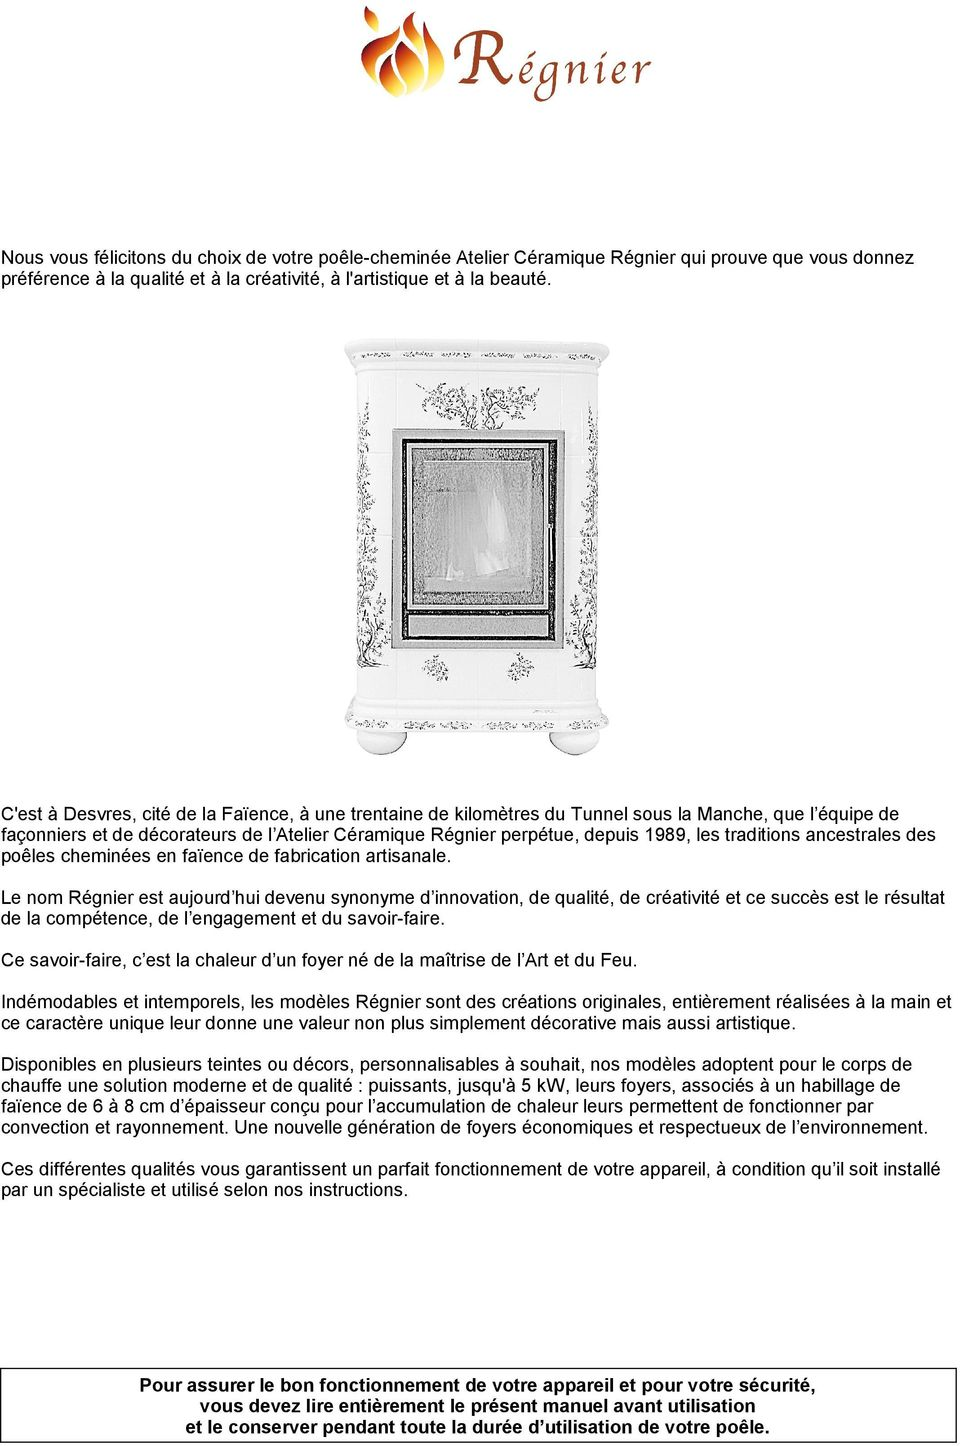 Atelier Ceramique Regnier Cheminees Instructions D Installation Mode D Emploi Pdf